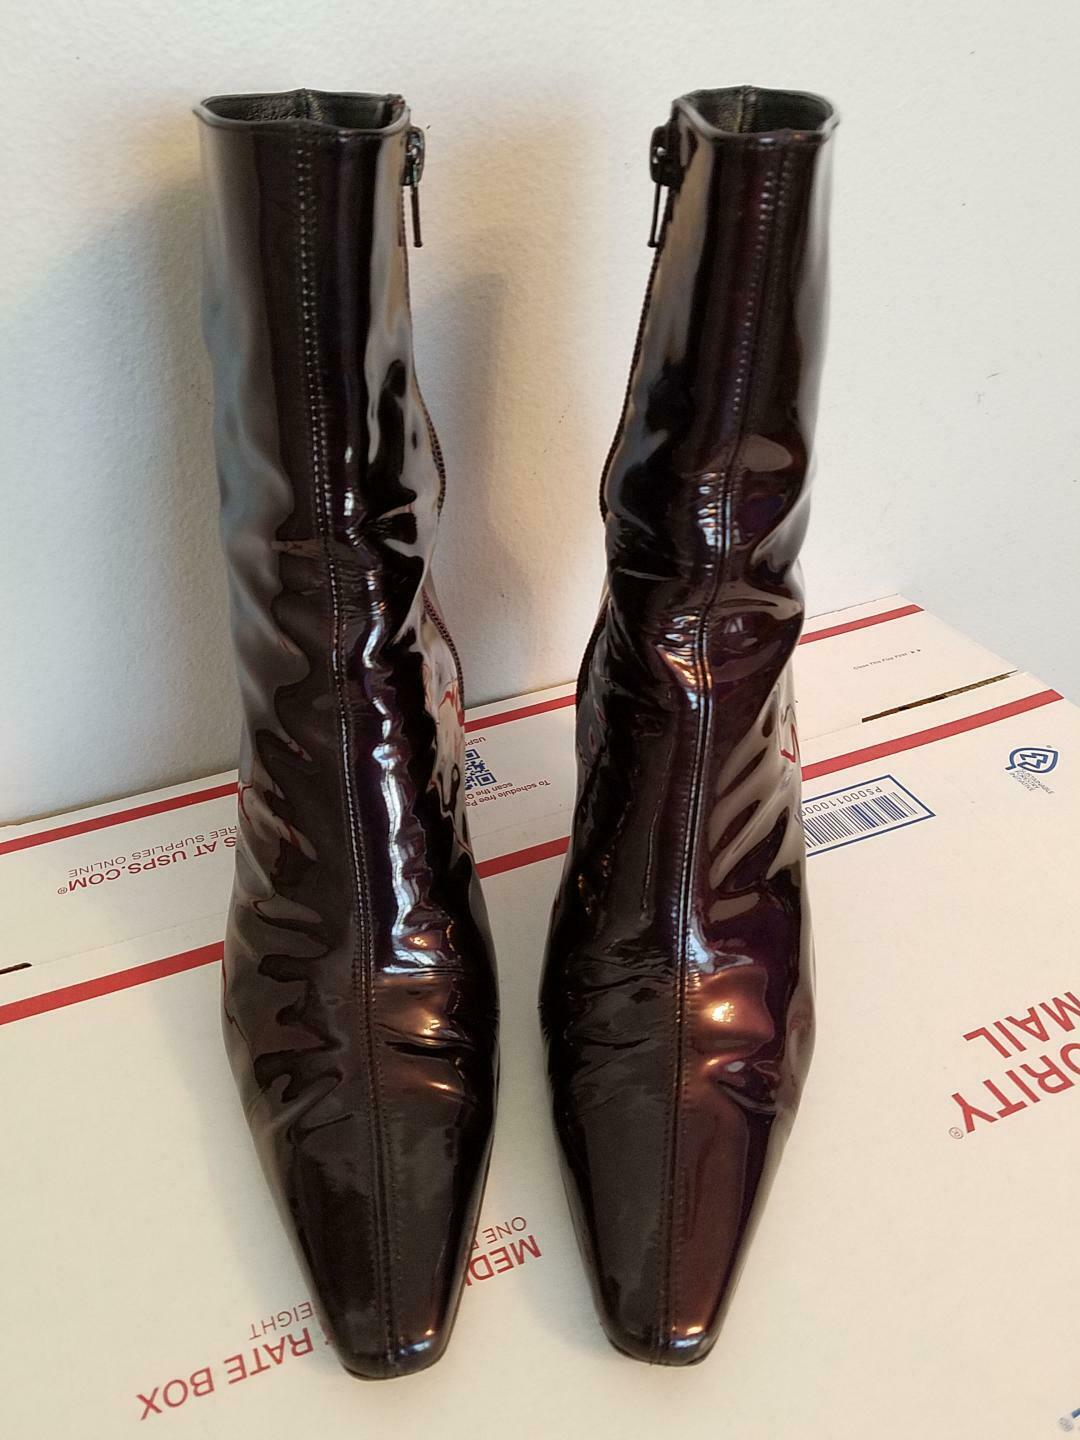 Stuart Weitzman Patent Leather Zip Ankle Boots Size 9.5 Currant Brown